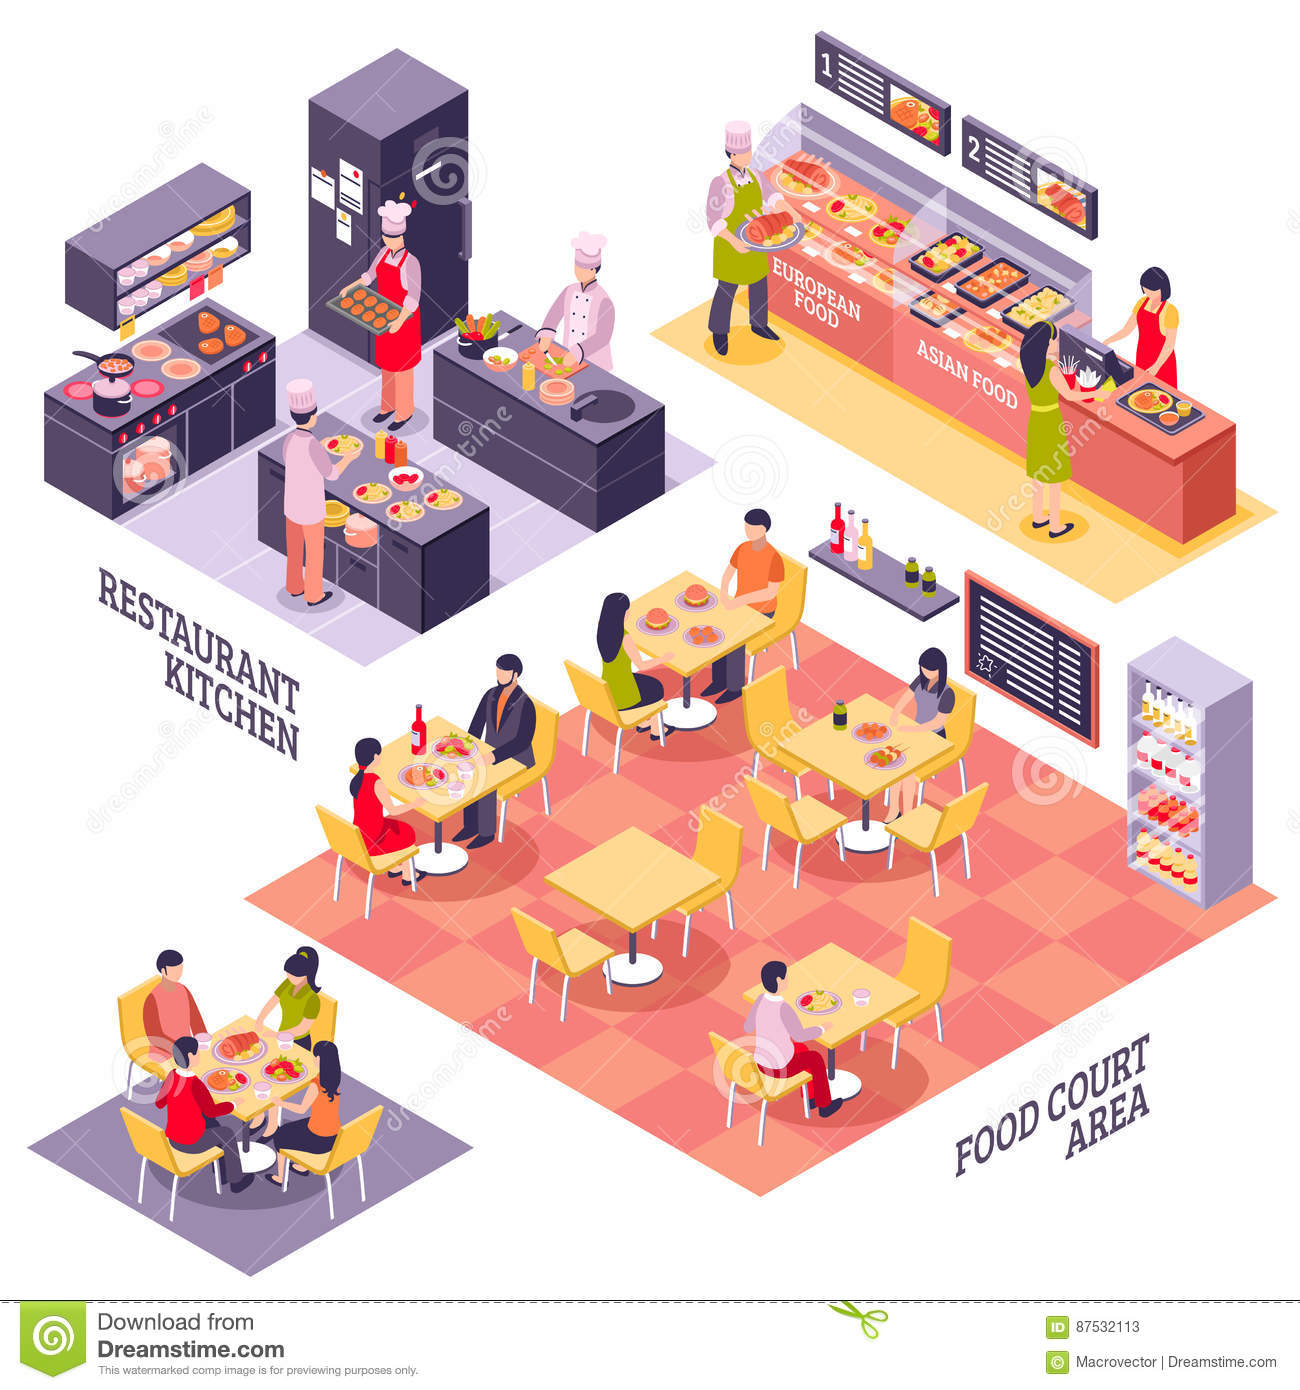 spatial diagram of fast food xs650 wiring court design concept stock vector image 87532113